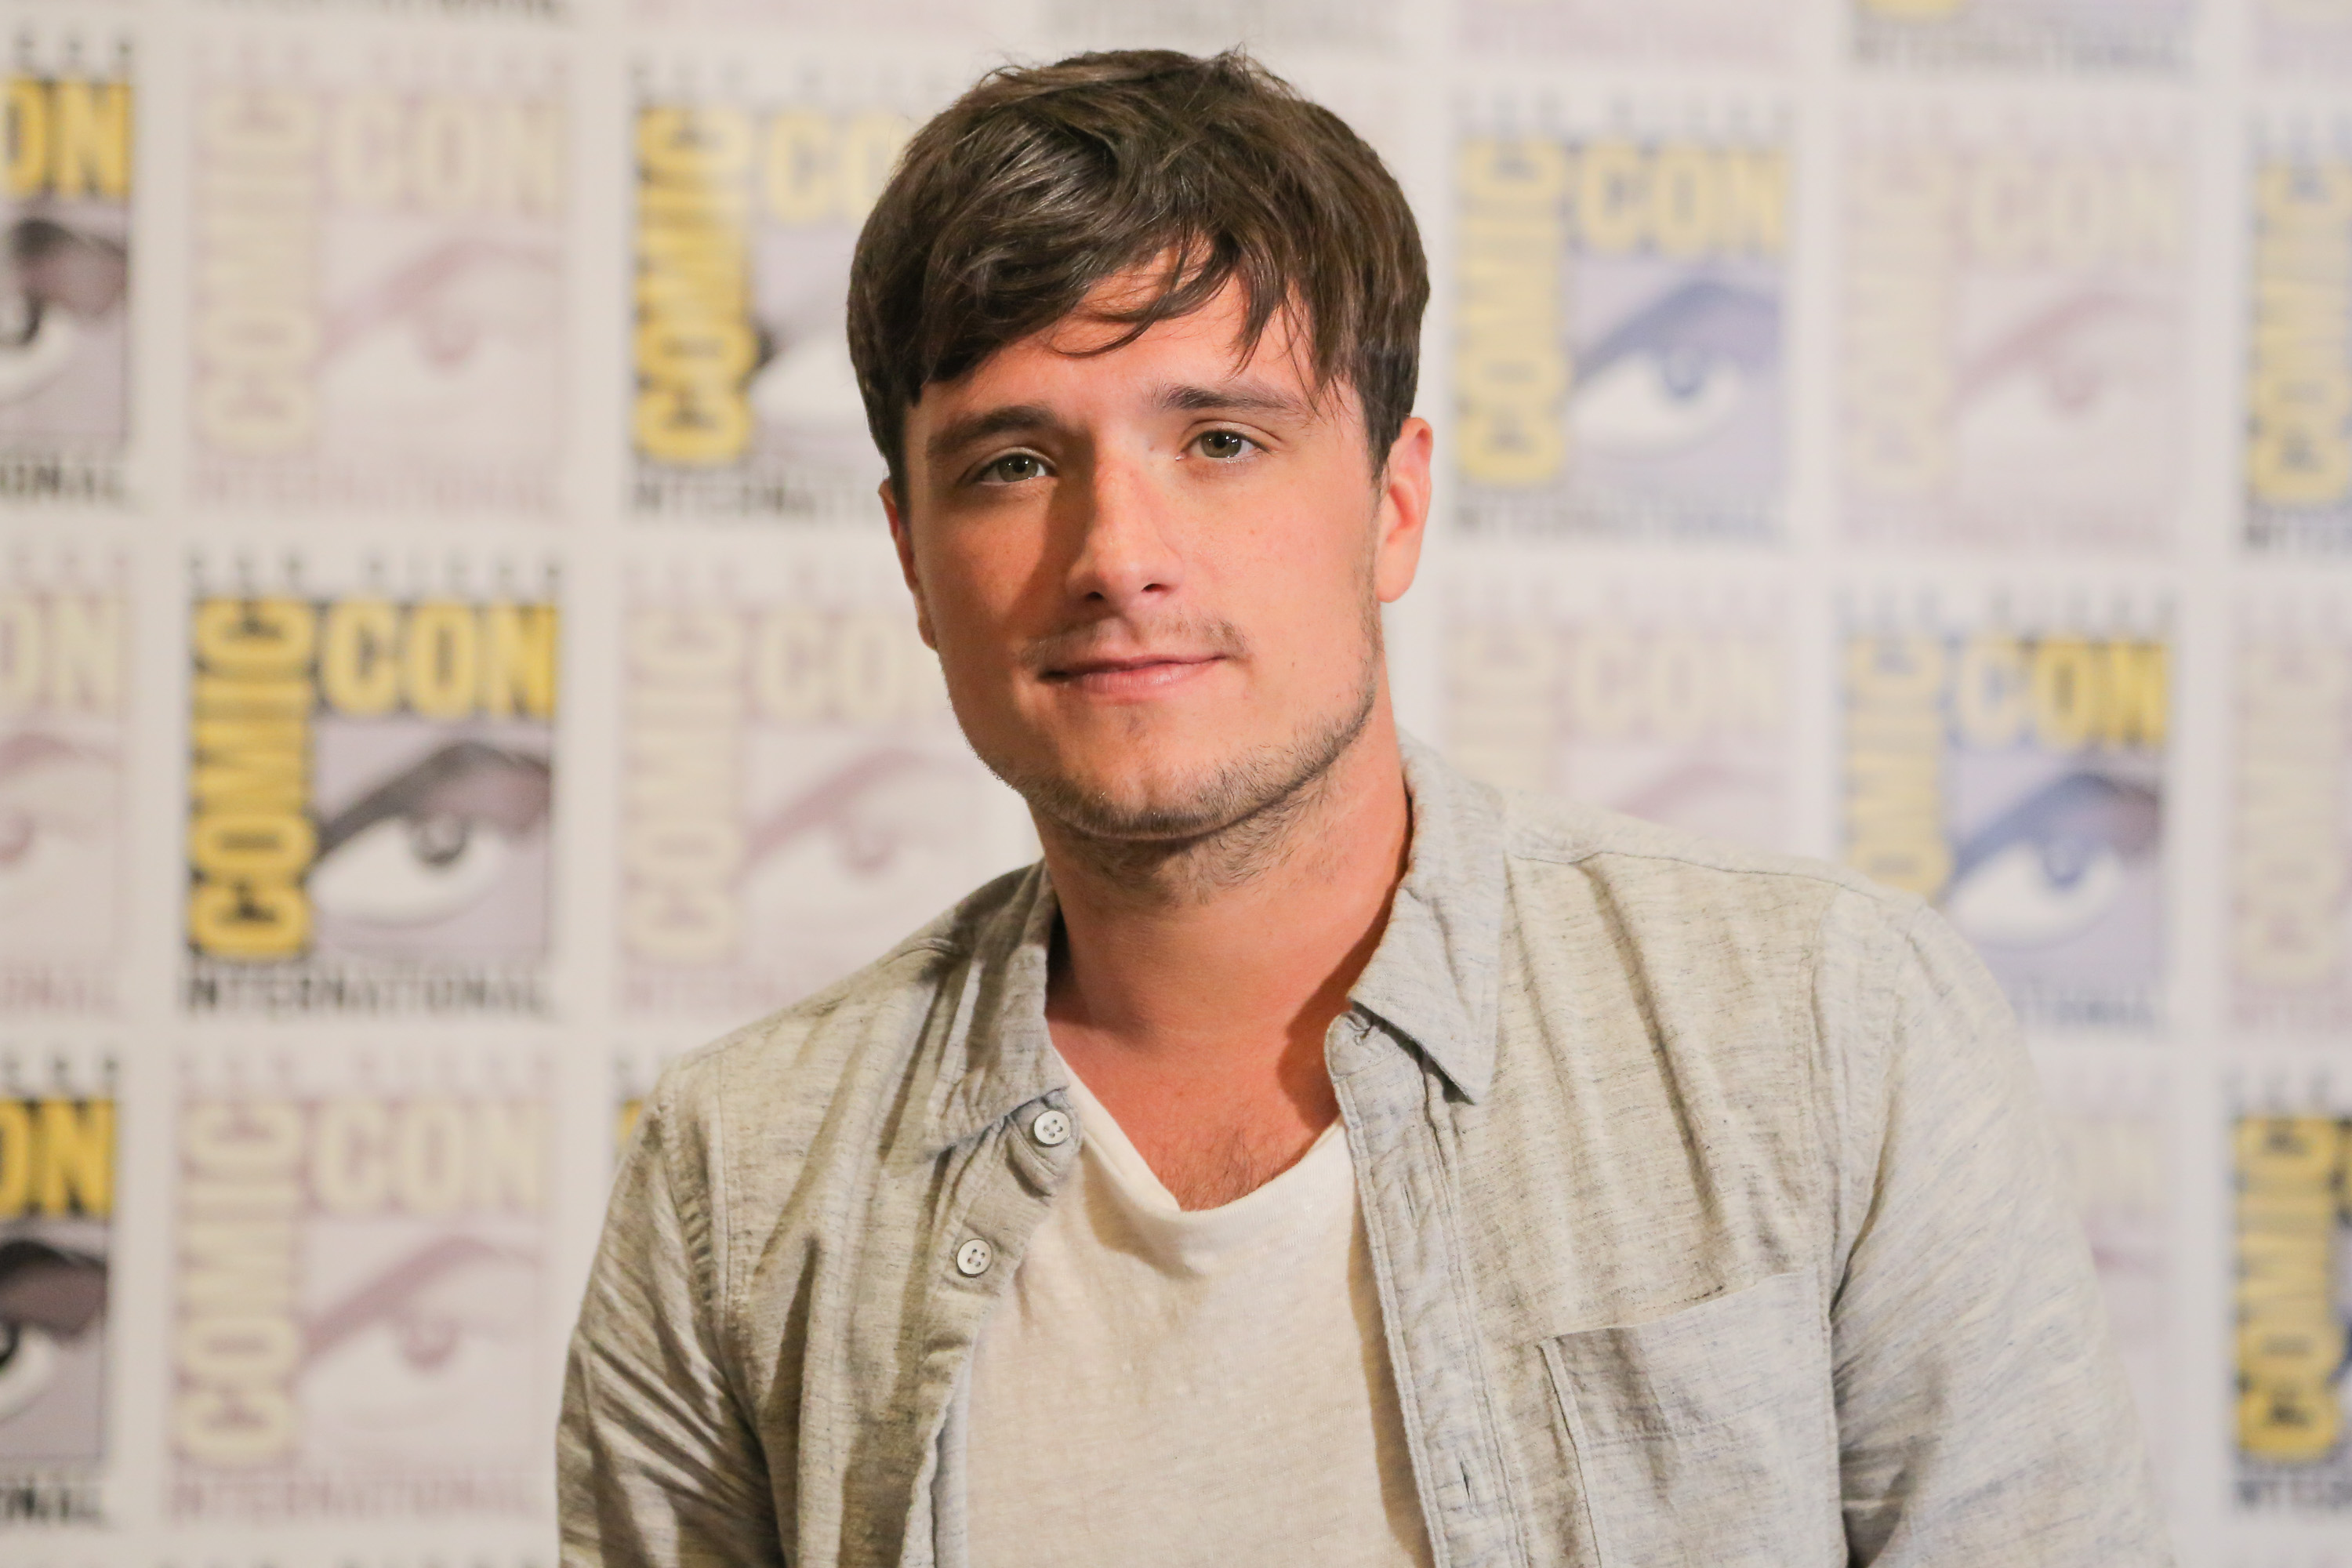 Josh Hutcherson attends Comic-Con International in July 2015 in San Diego, California.